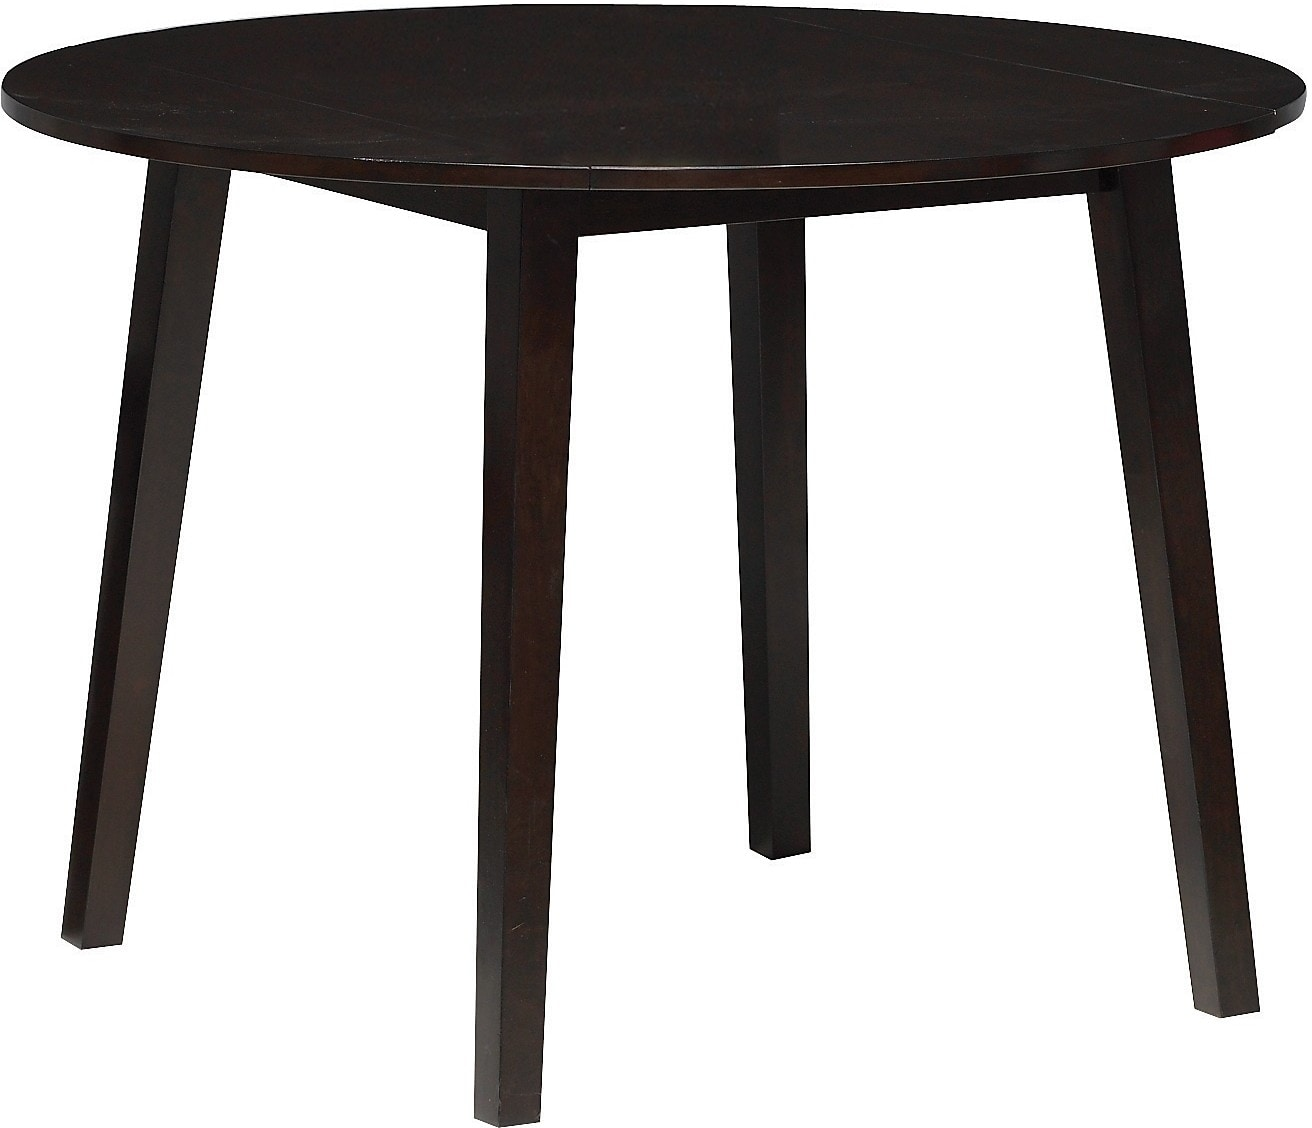 Adara round drop leaf dining table the brick for Dining room tables drop leaf